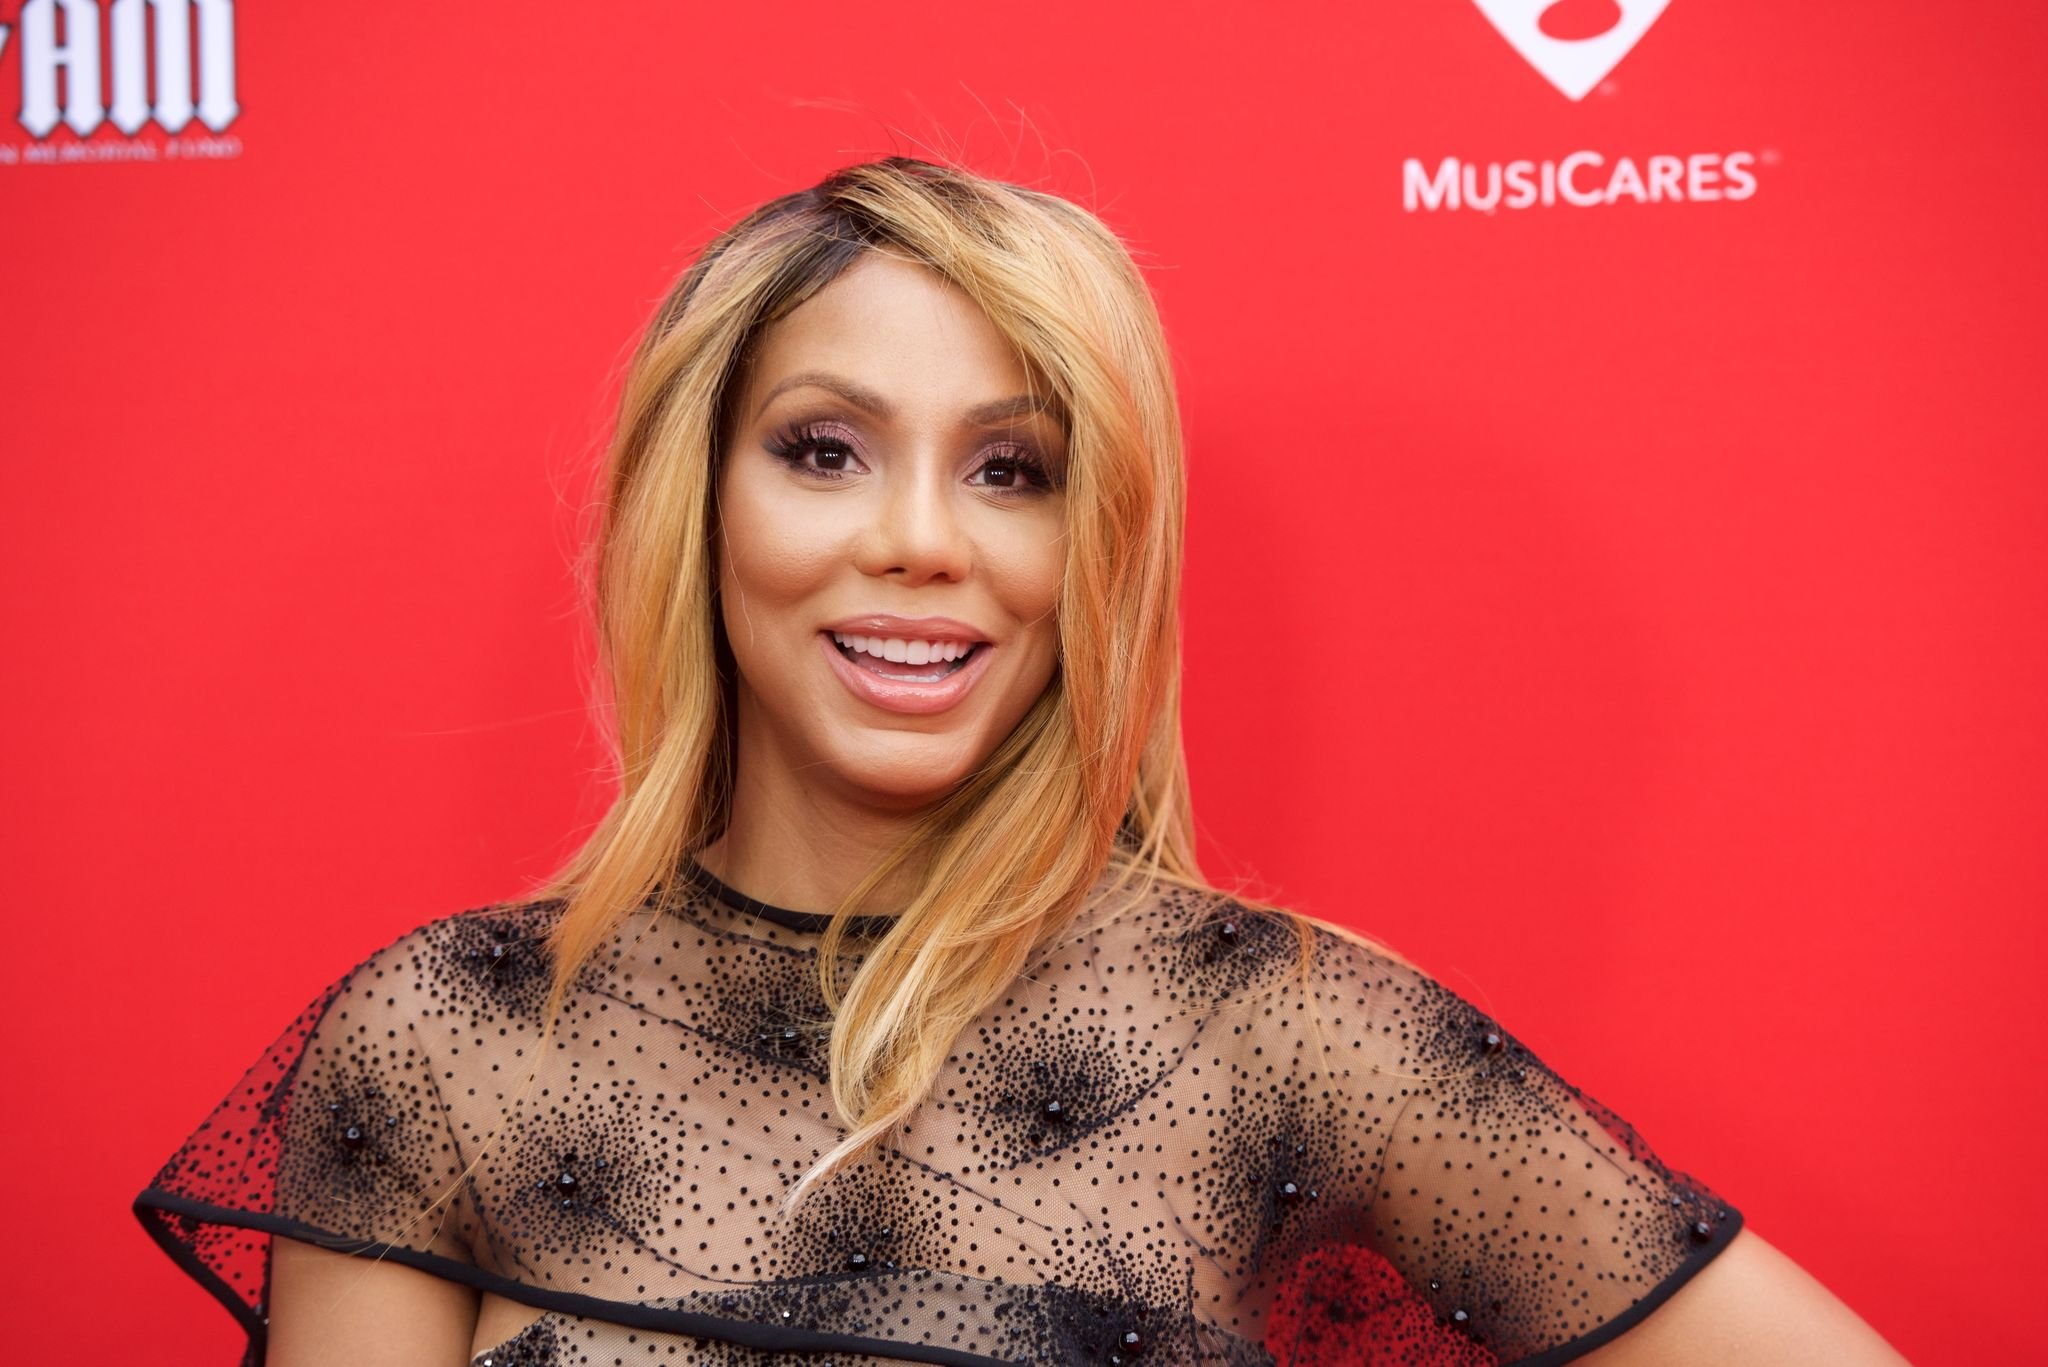 Singer Tamar Braxton attends the 12th Annual MusiCares MAP Fund Tribute Concert at The Novo by Microsoft on May 19, 2016 | Photo: Getty Images